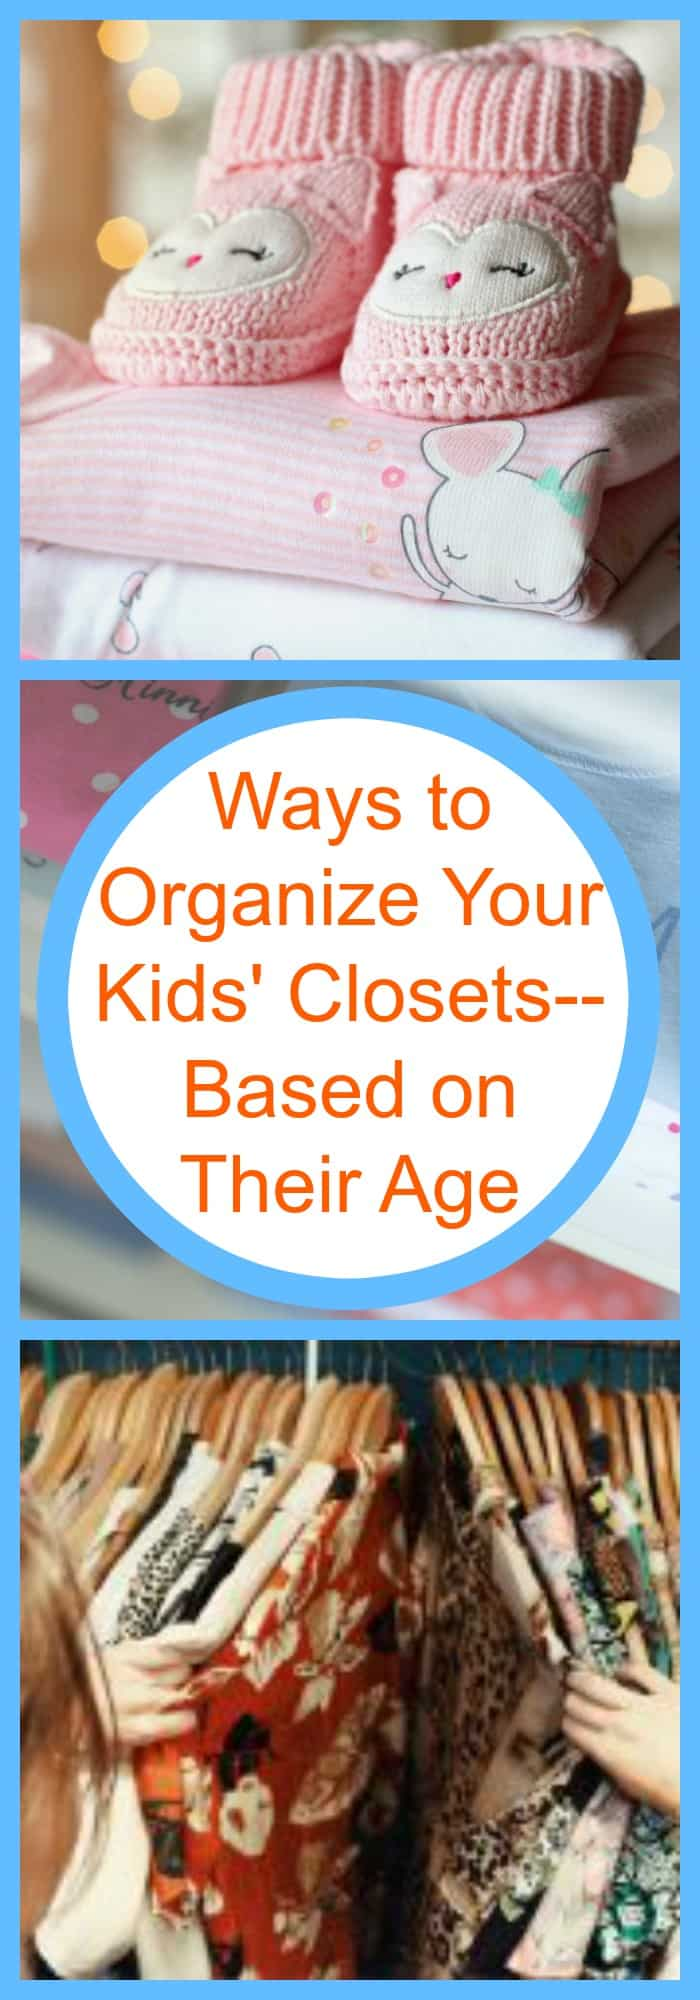 Ways to Organize Your Kids' Closets--Based on Their Age